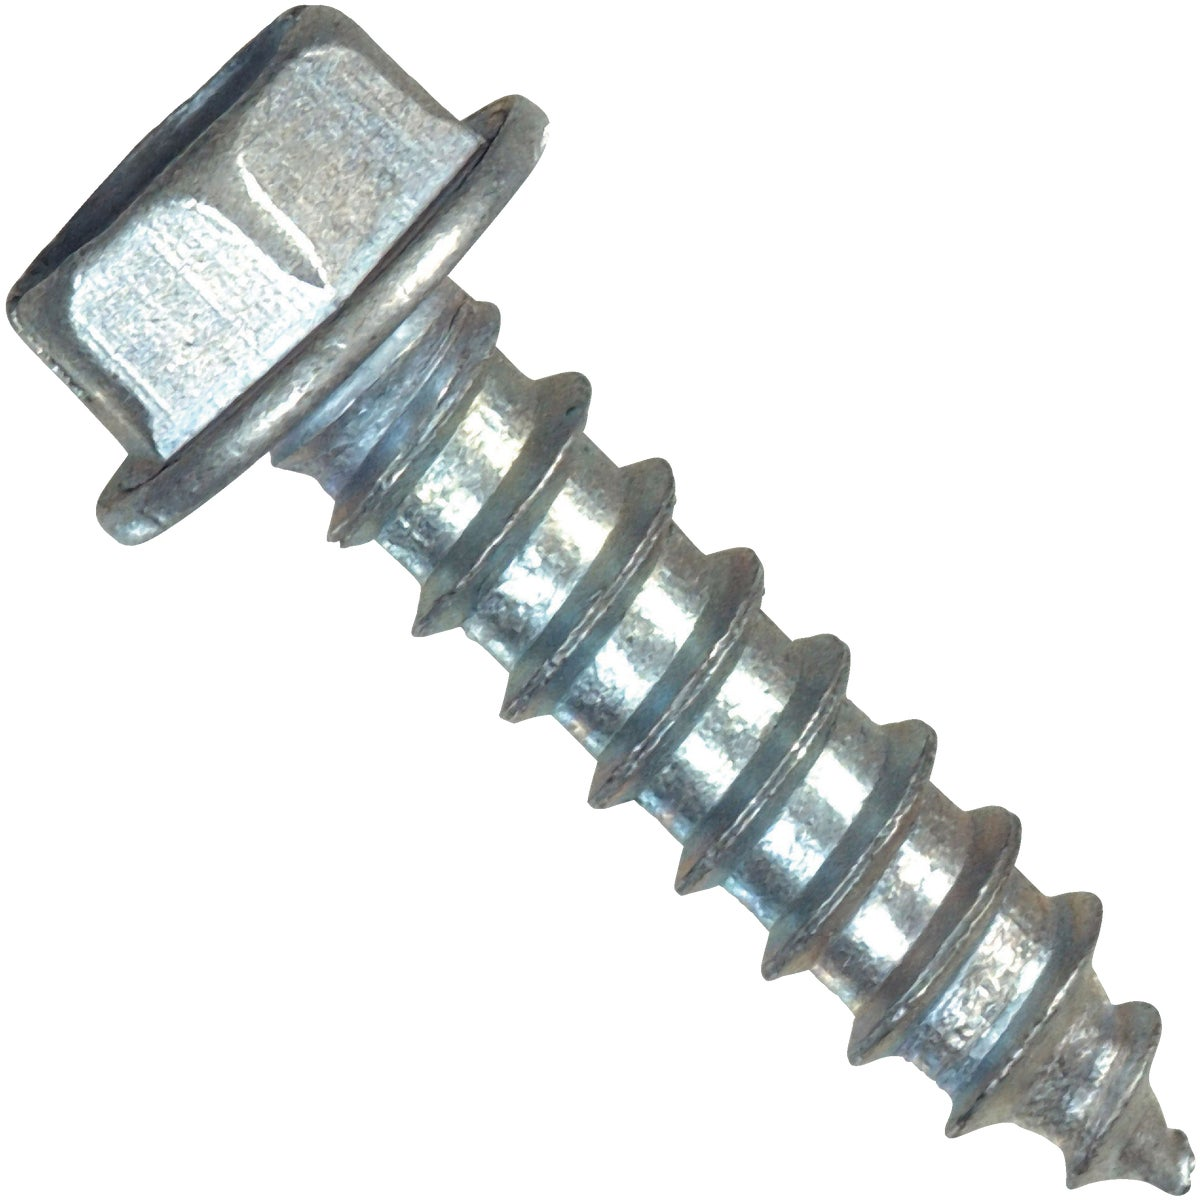 1/4X1-1/4 HWH S MT SCREW - 70337 by Hillman Fastener